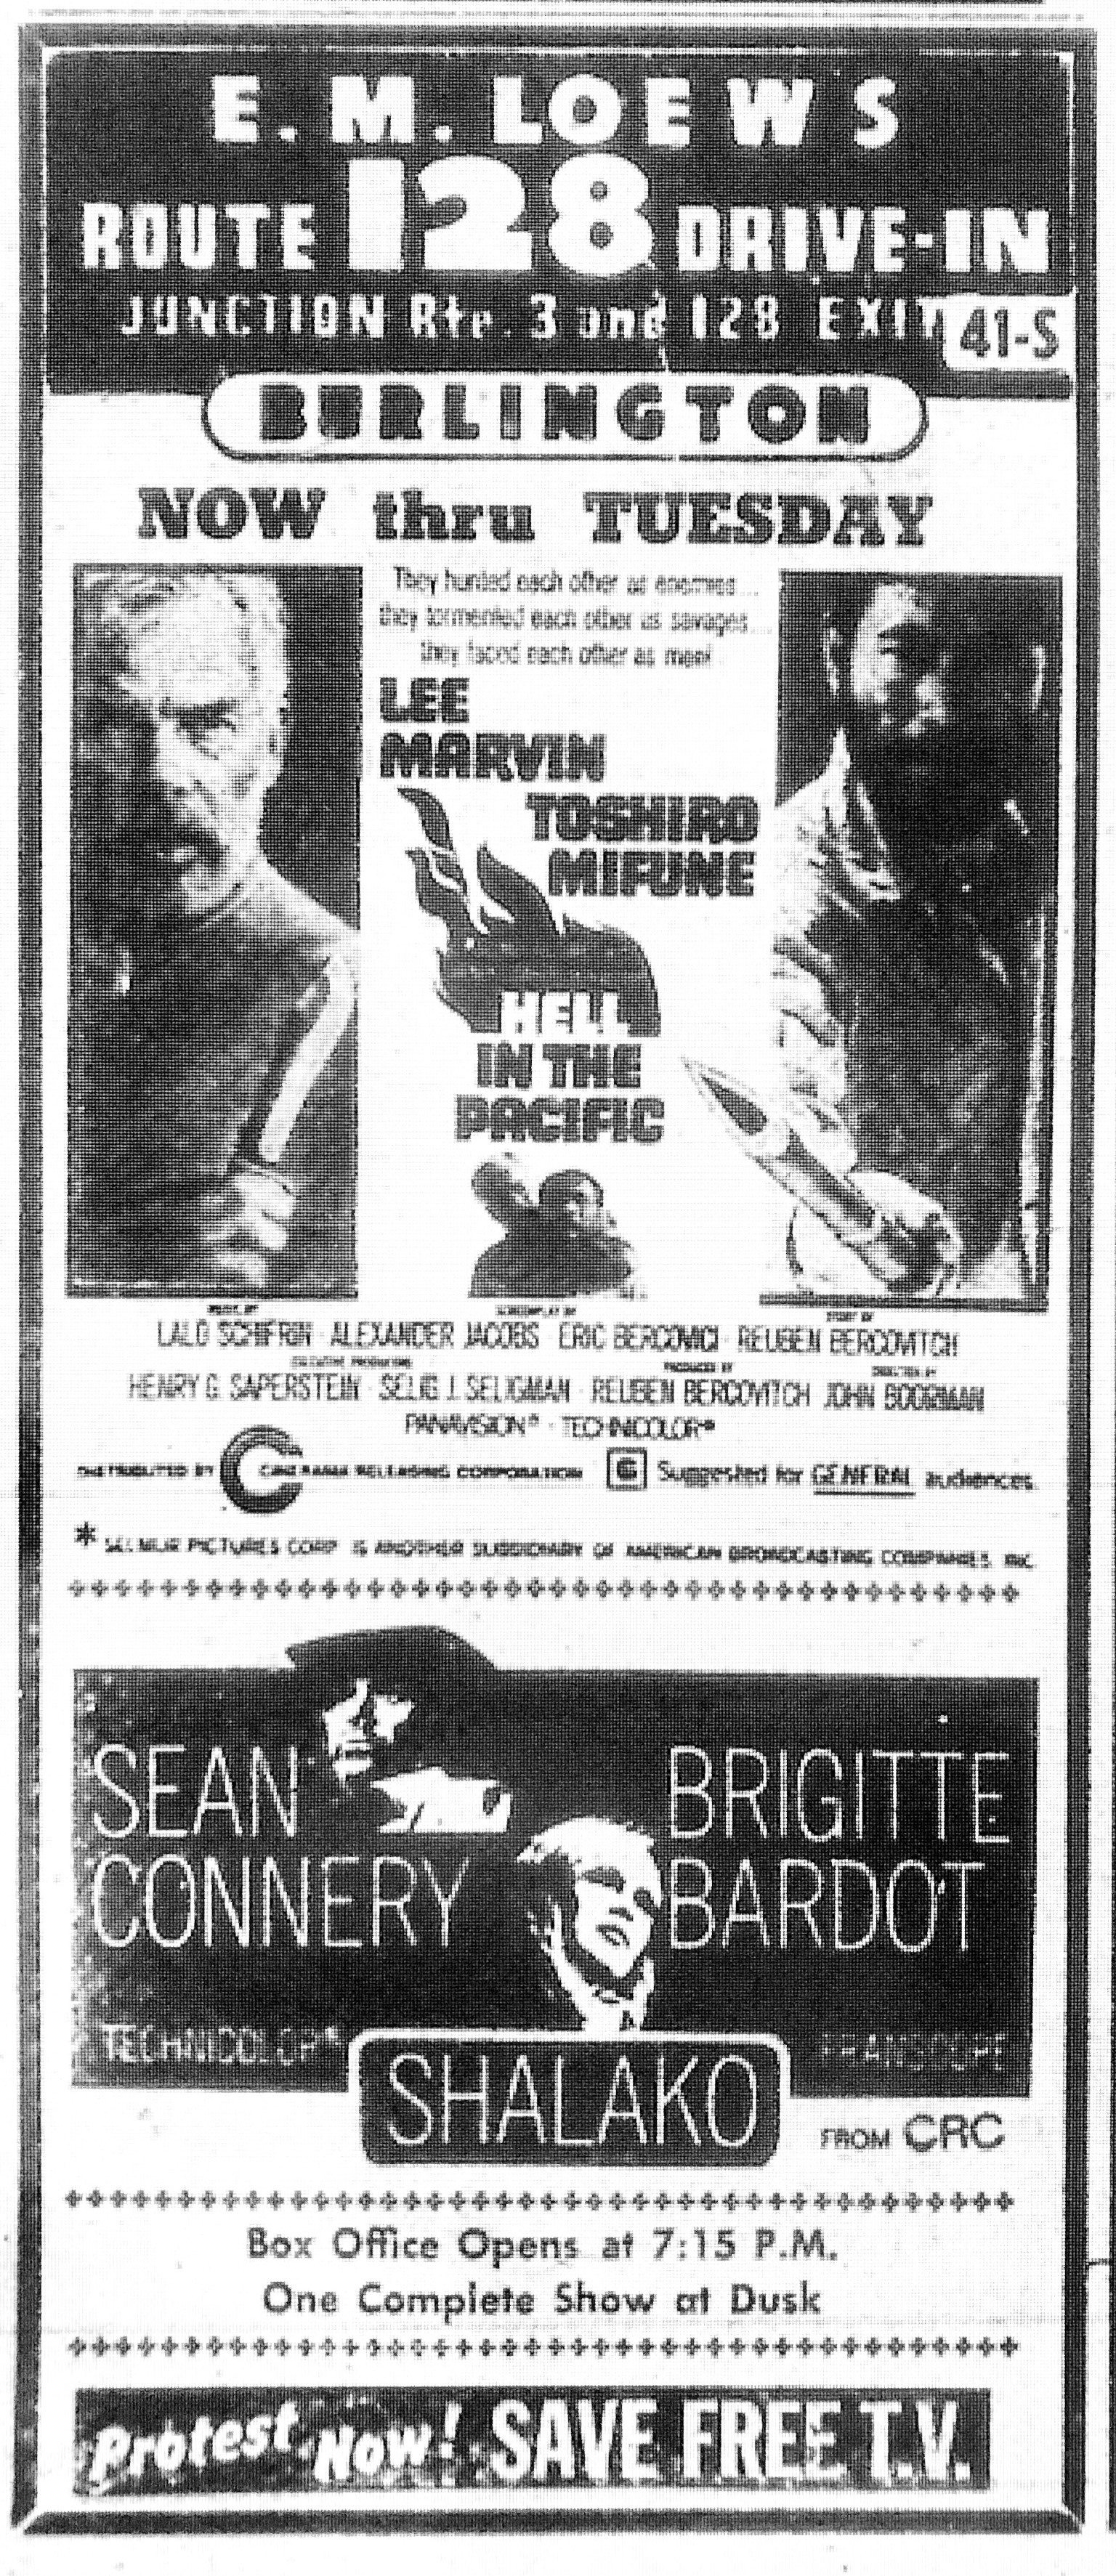 128 Drive In ad, Hell in the Pacific